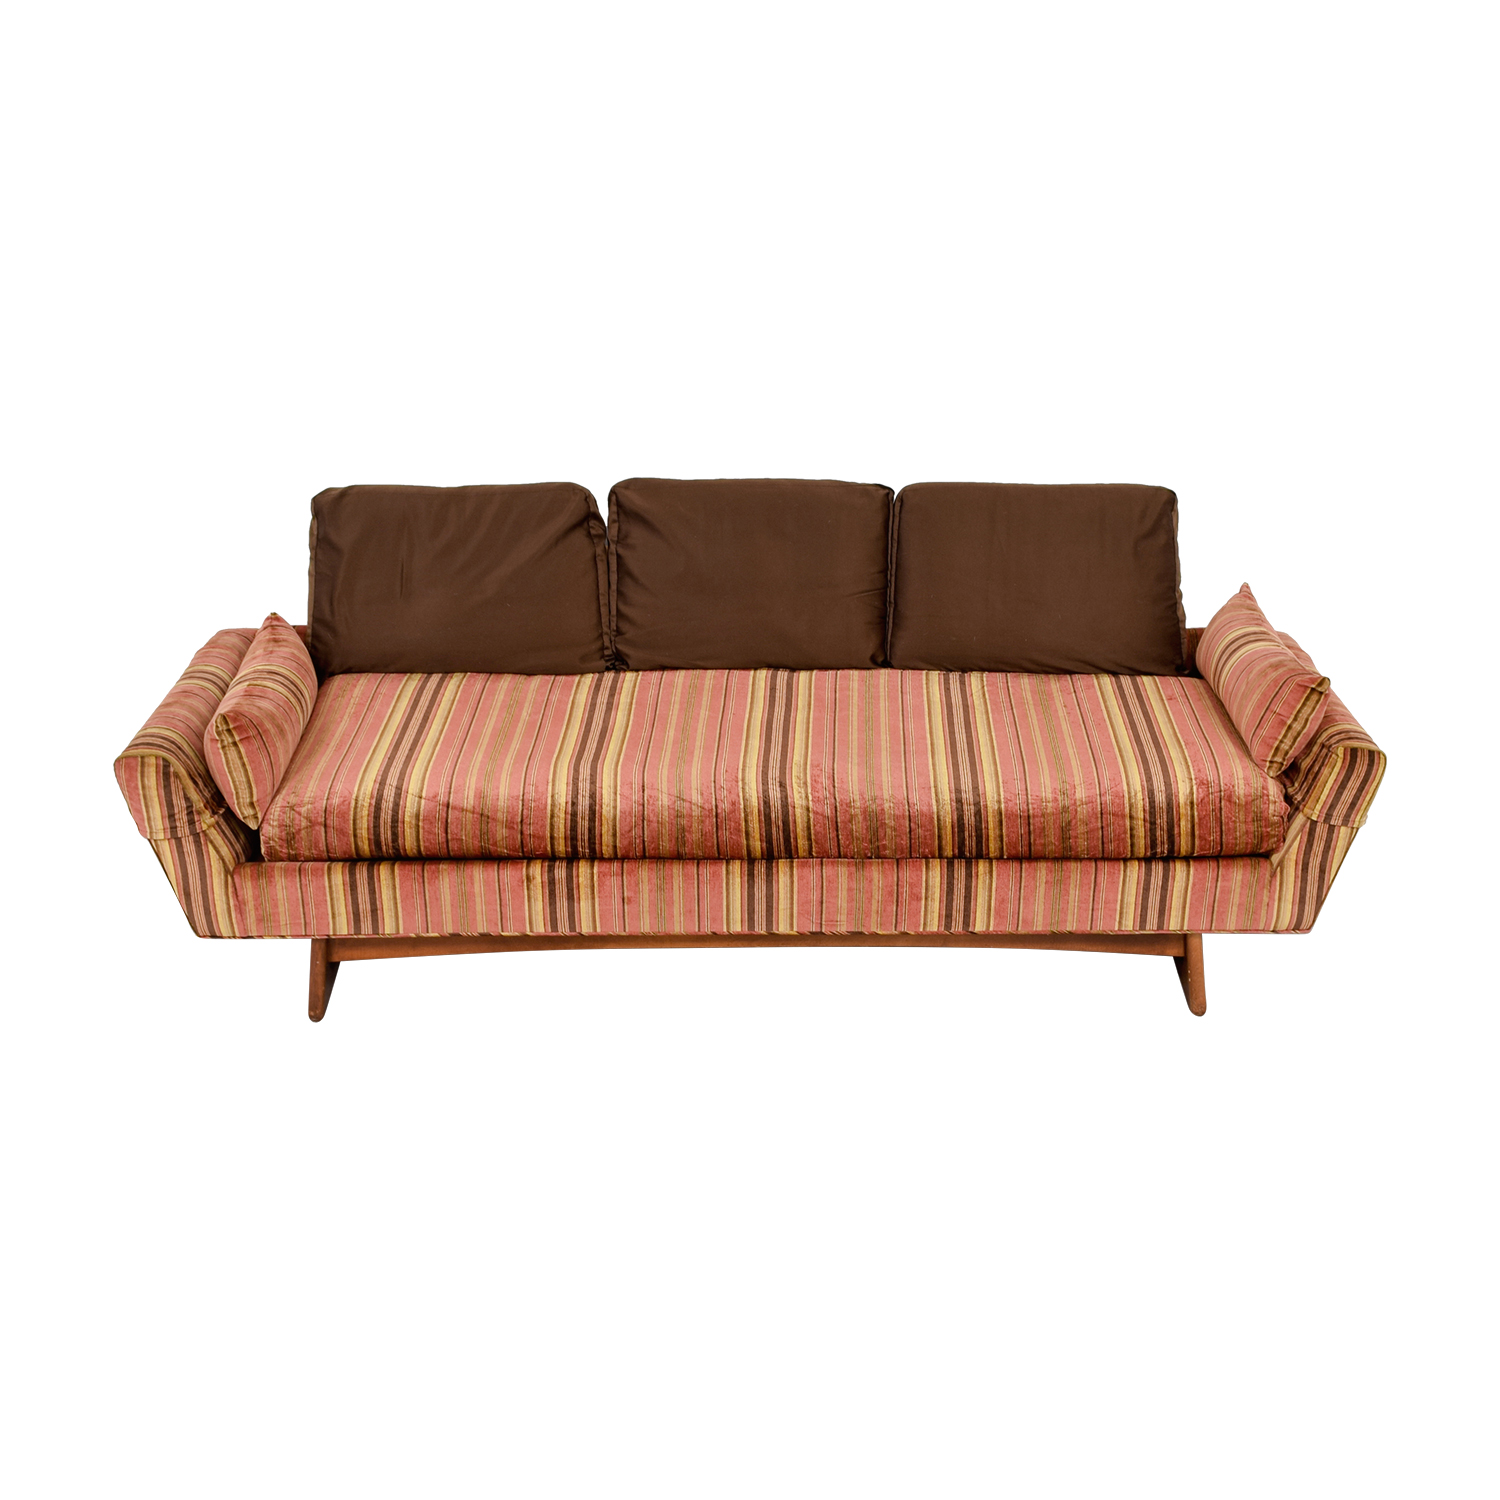 Adrian Pearsall Adrian Pearsall MCM Rose and Brown Striped Sofa for sale